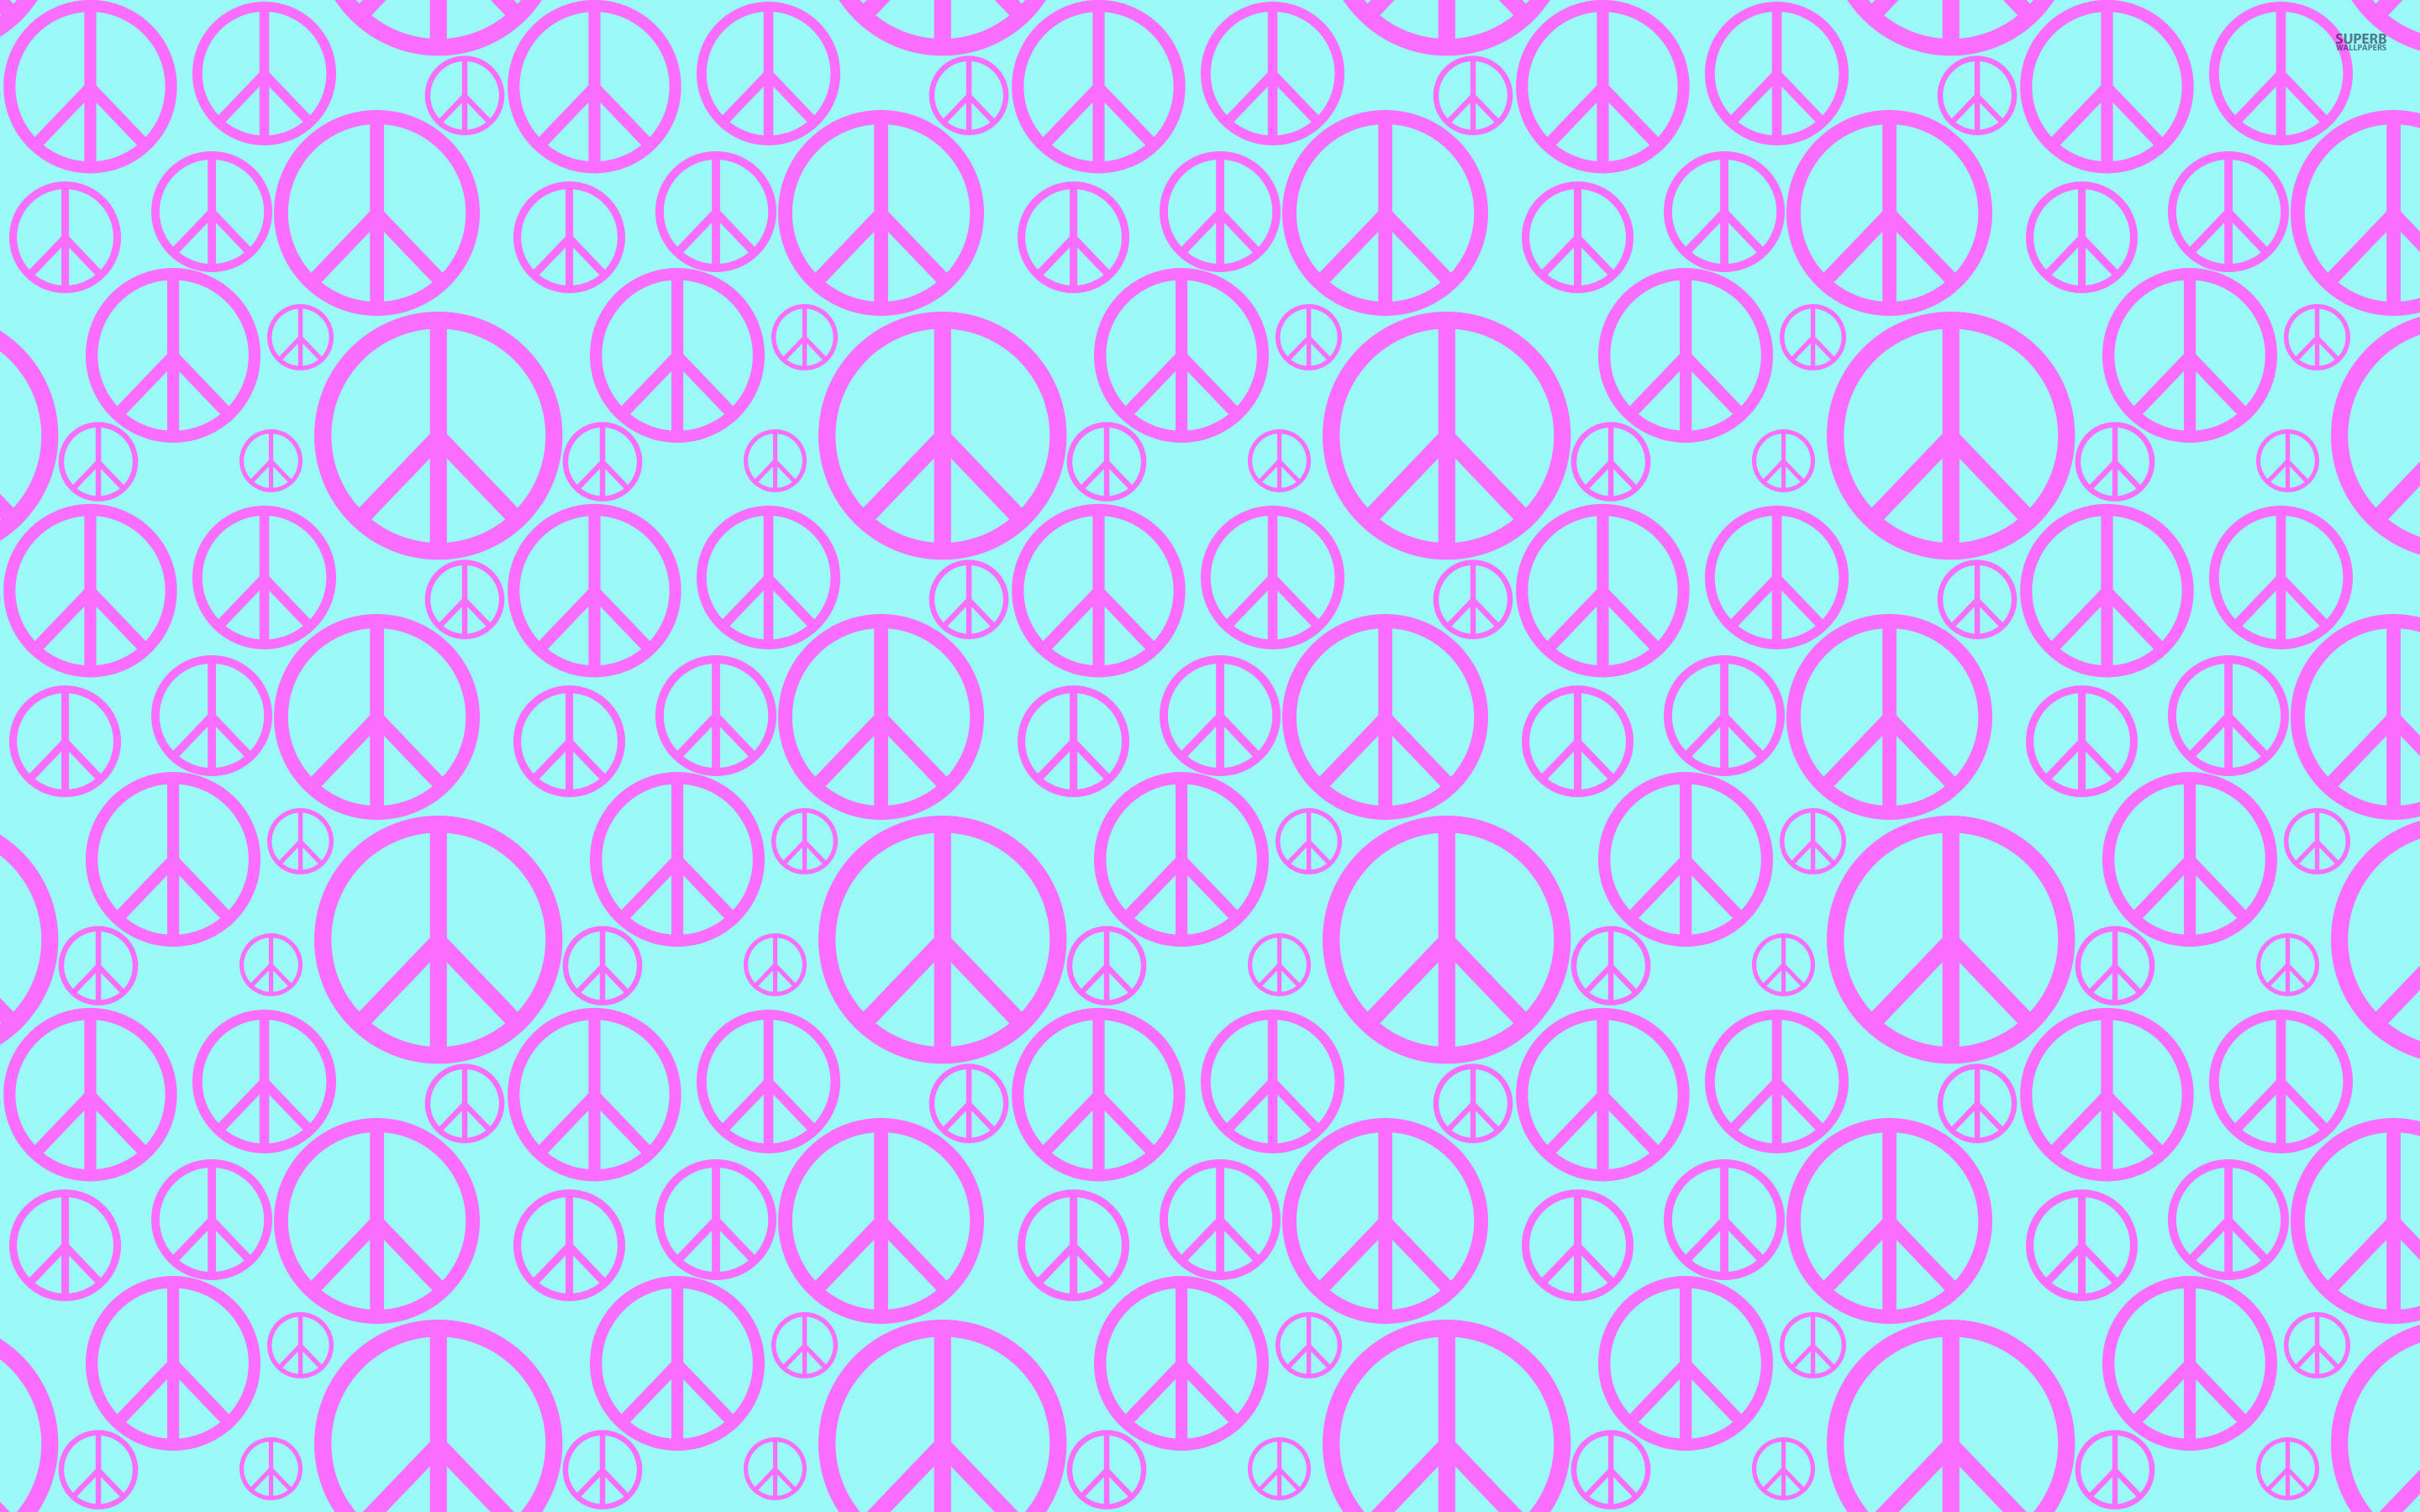 Colorful peace sign backgrounds wallpaper peace sign picture pic wpe007118 voltagebd Gallery